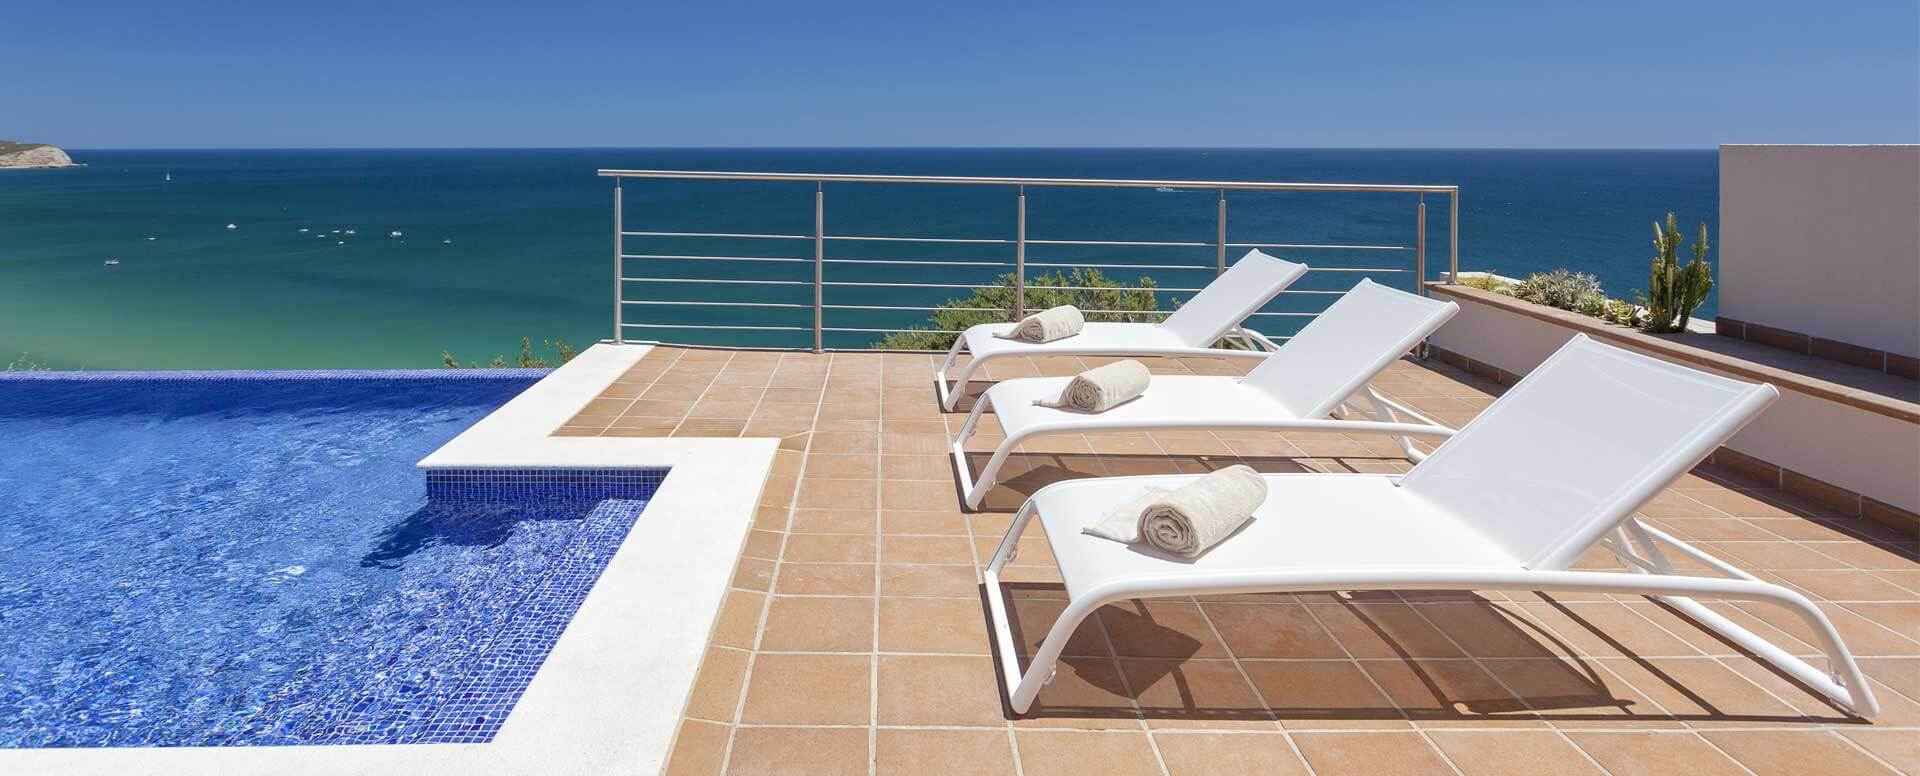 The experience of renting a luxury villa in the Algarve - Algarve